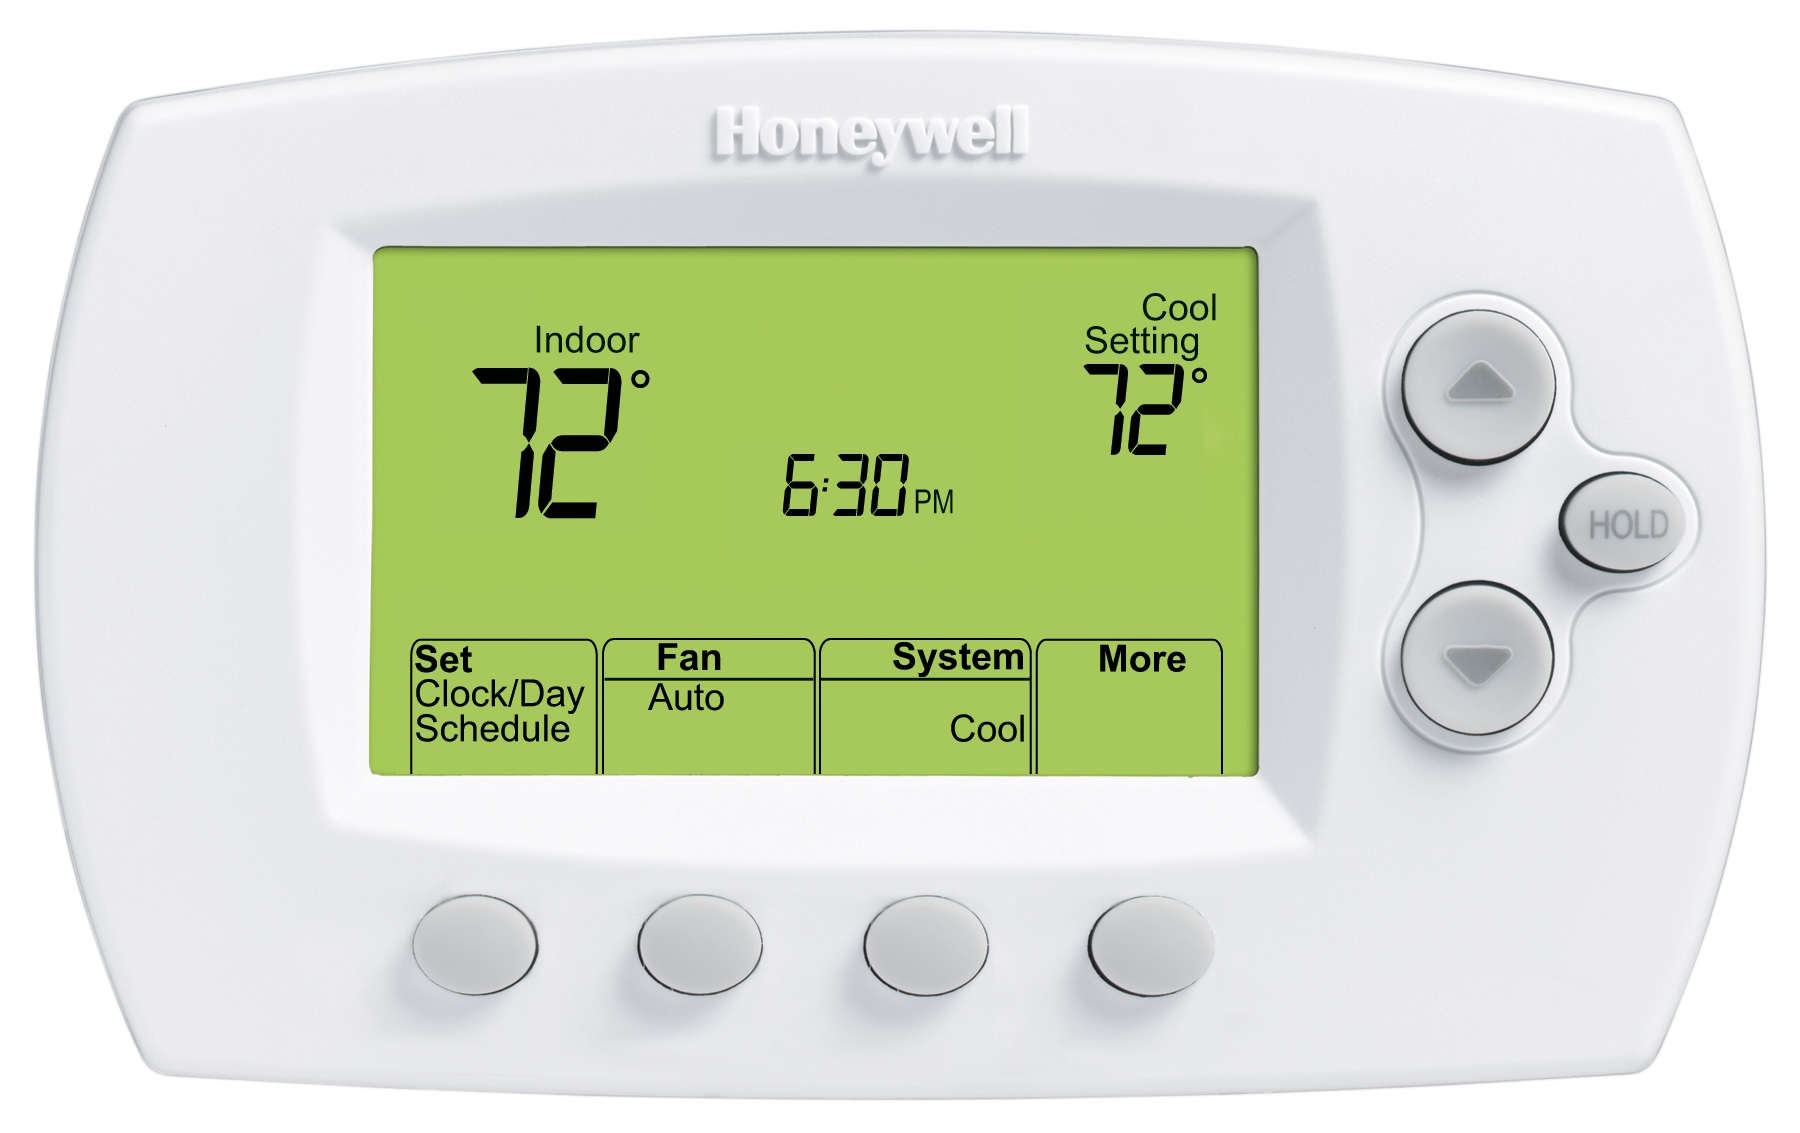 Tips To Maximize Savings With A Programmable Thermostat